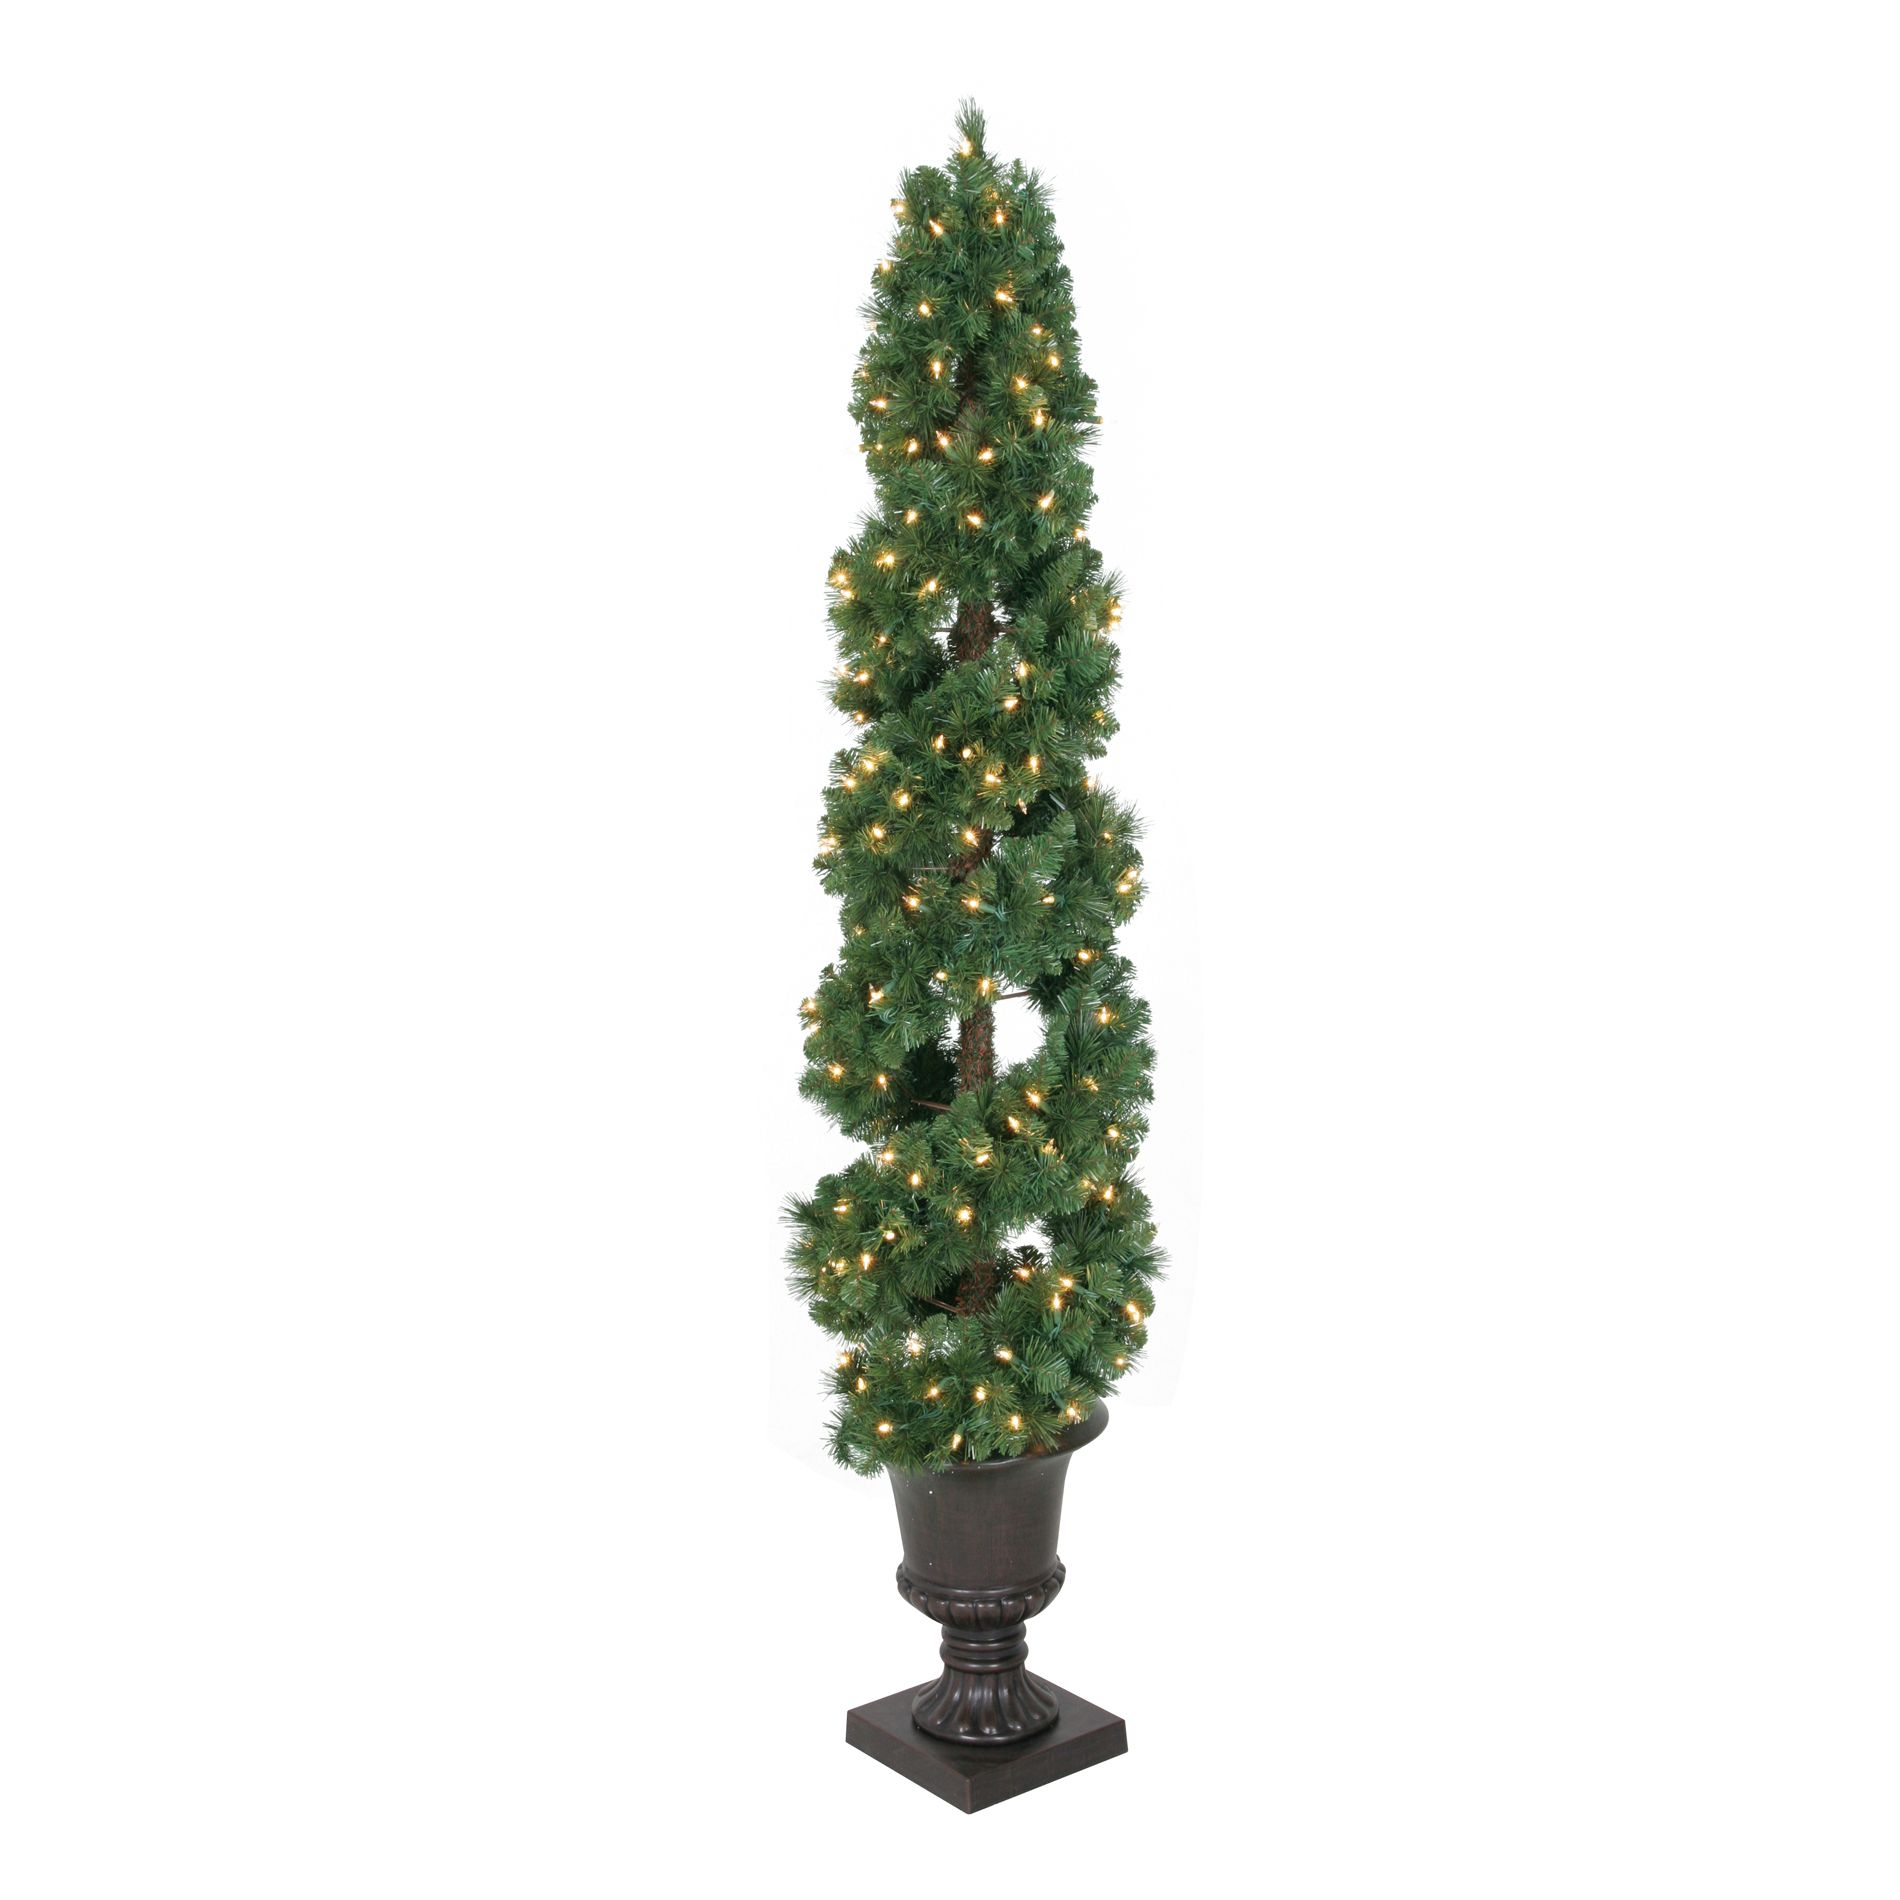 Kmart Christmas Tree Lights